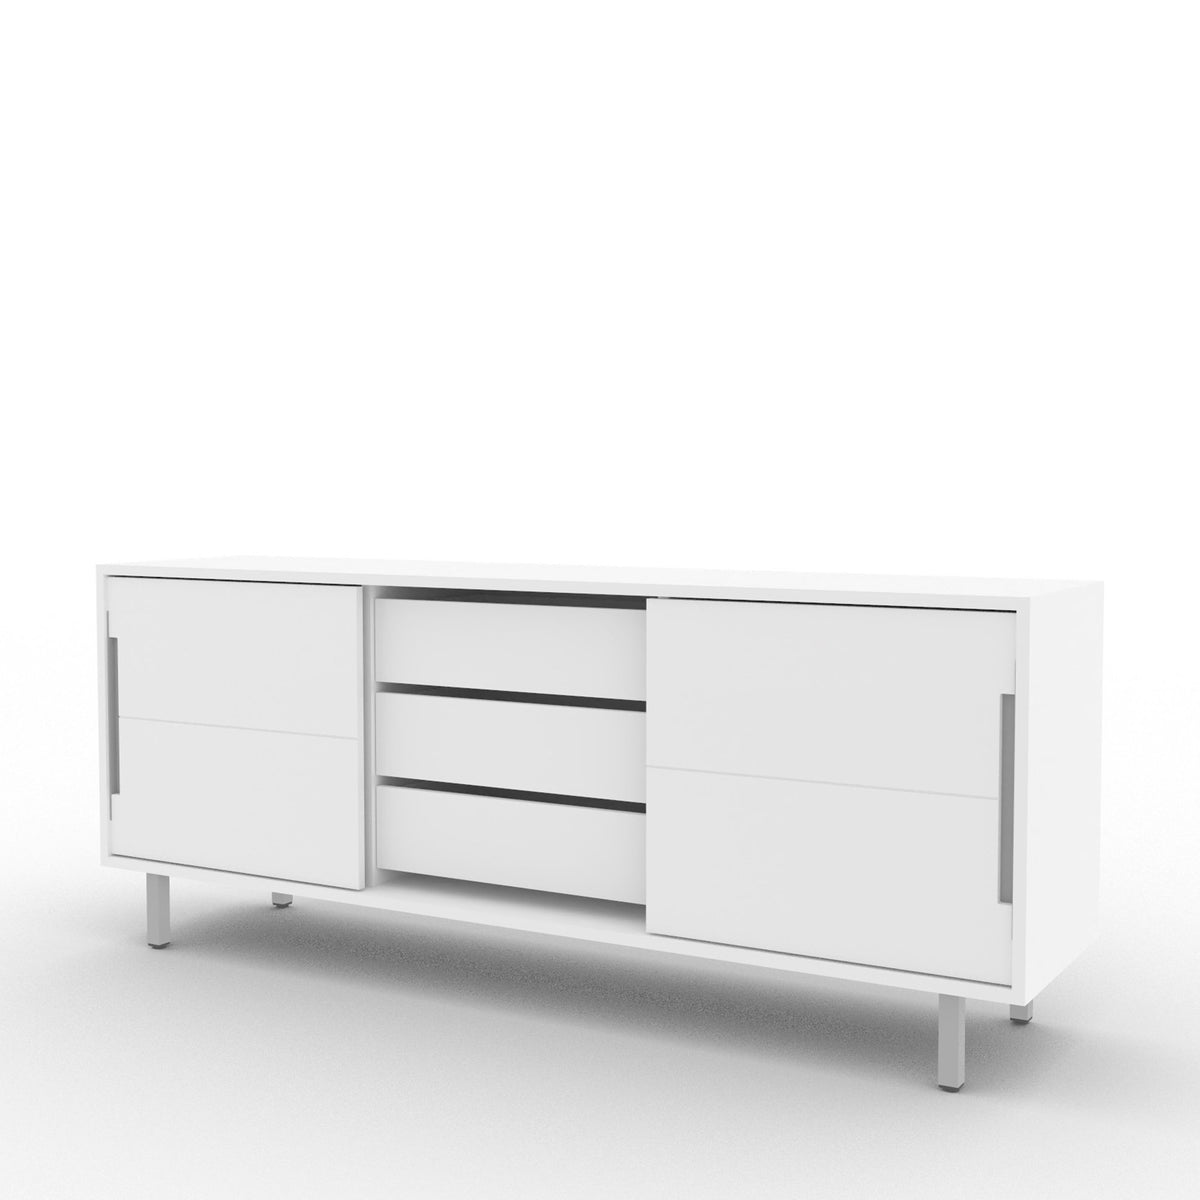 Edsbyn Office Part Sideboard 1800mmW White with Silver Base